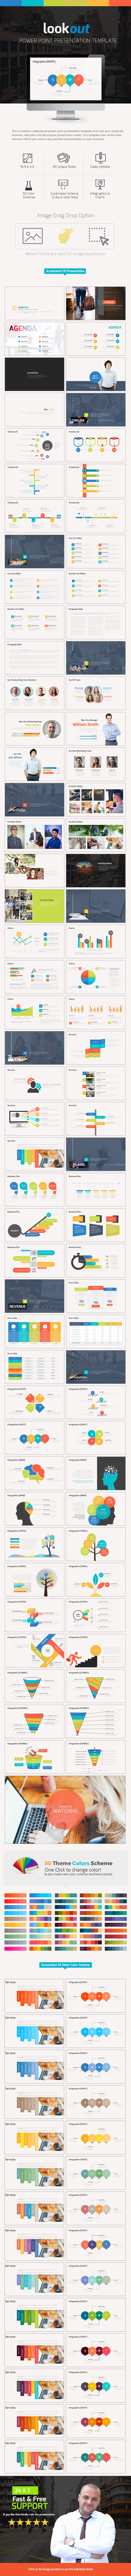 Lookout Power Point Presentation - Business PowerPoint Templates